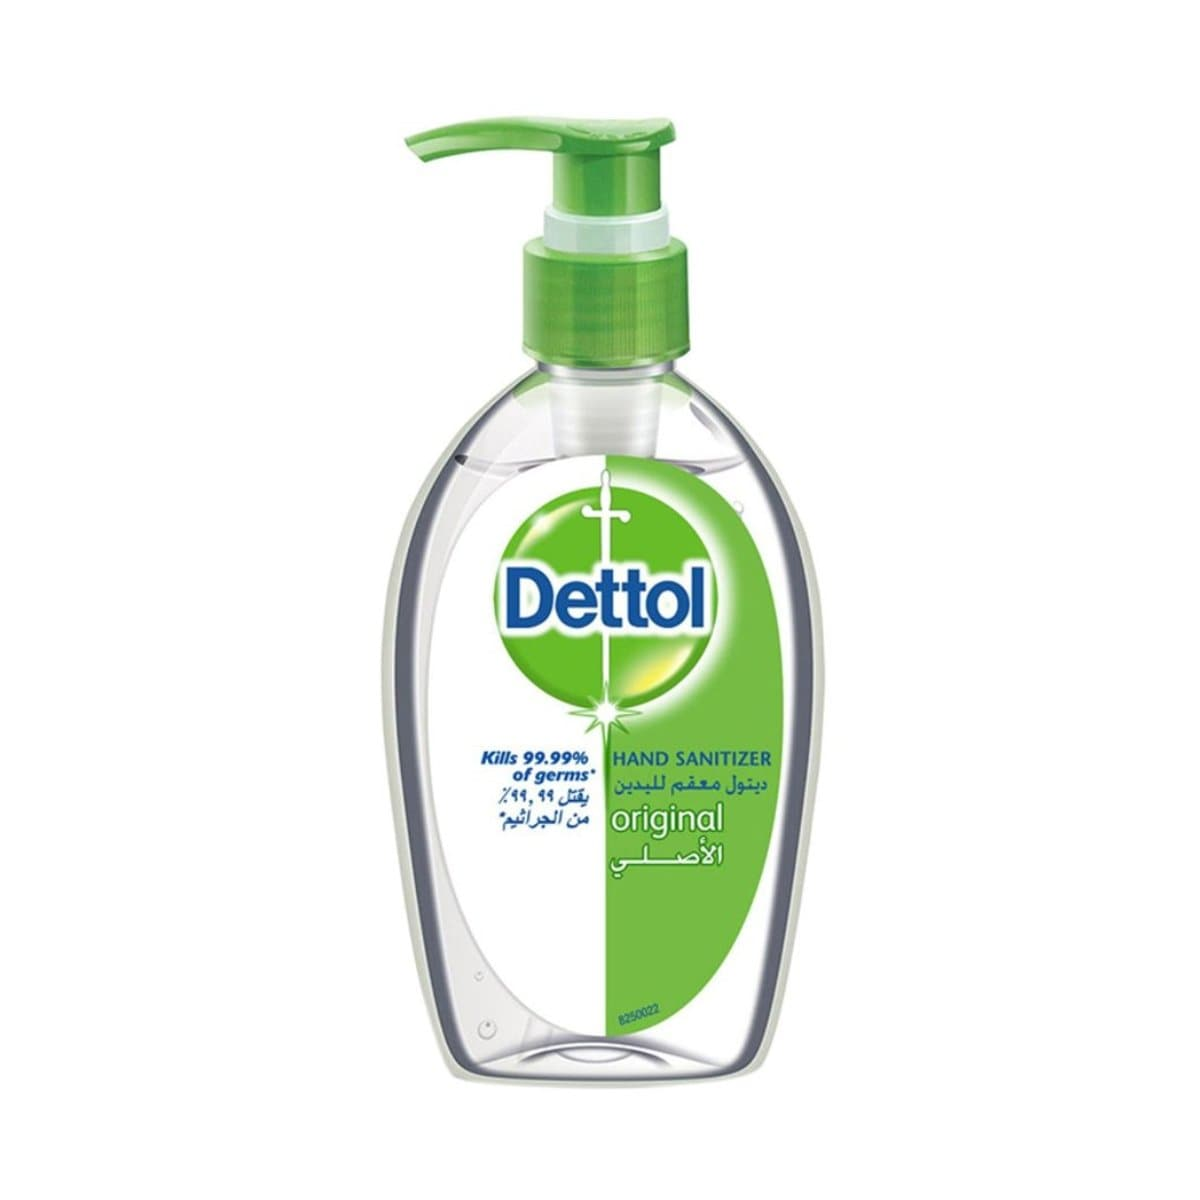 Dettol Hand Sanitizer Original, 200ml